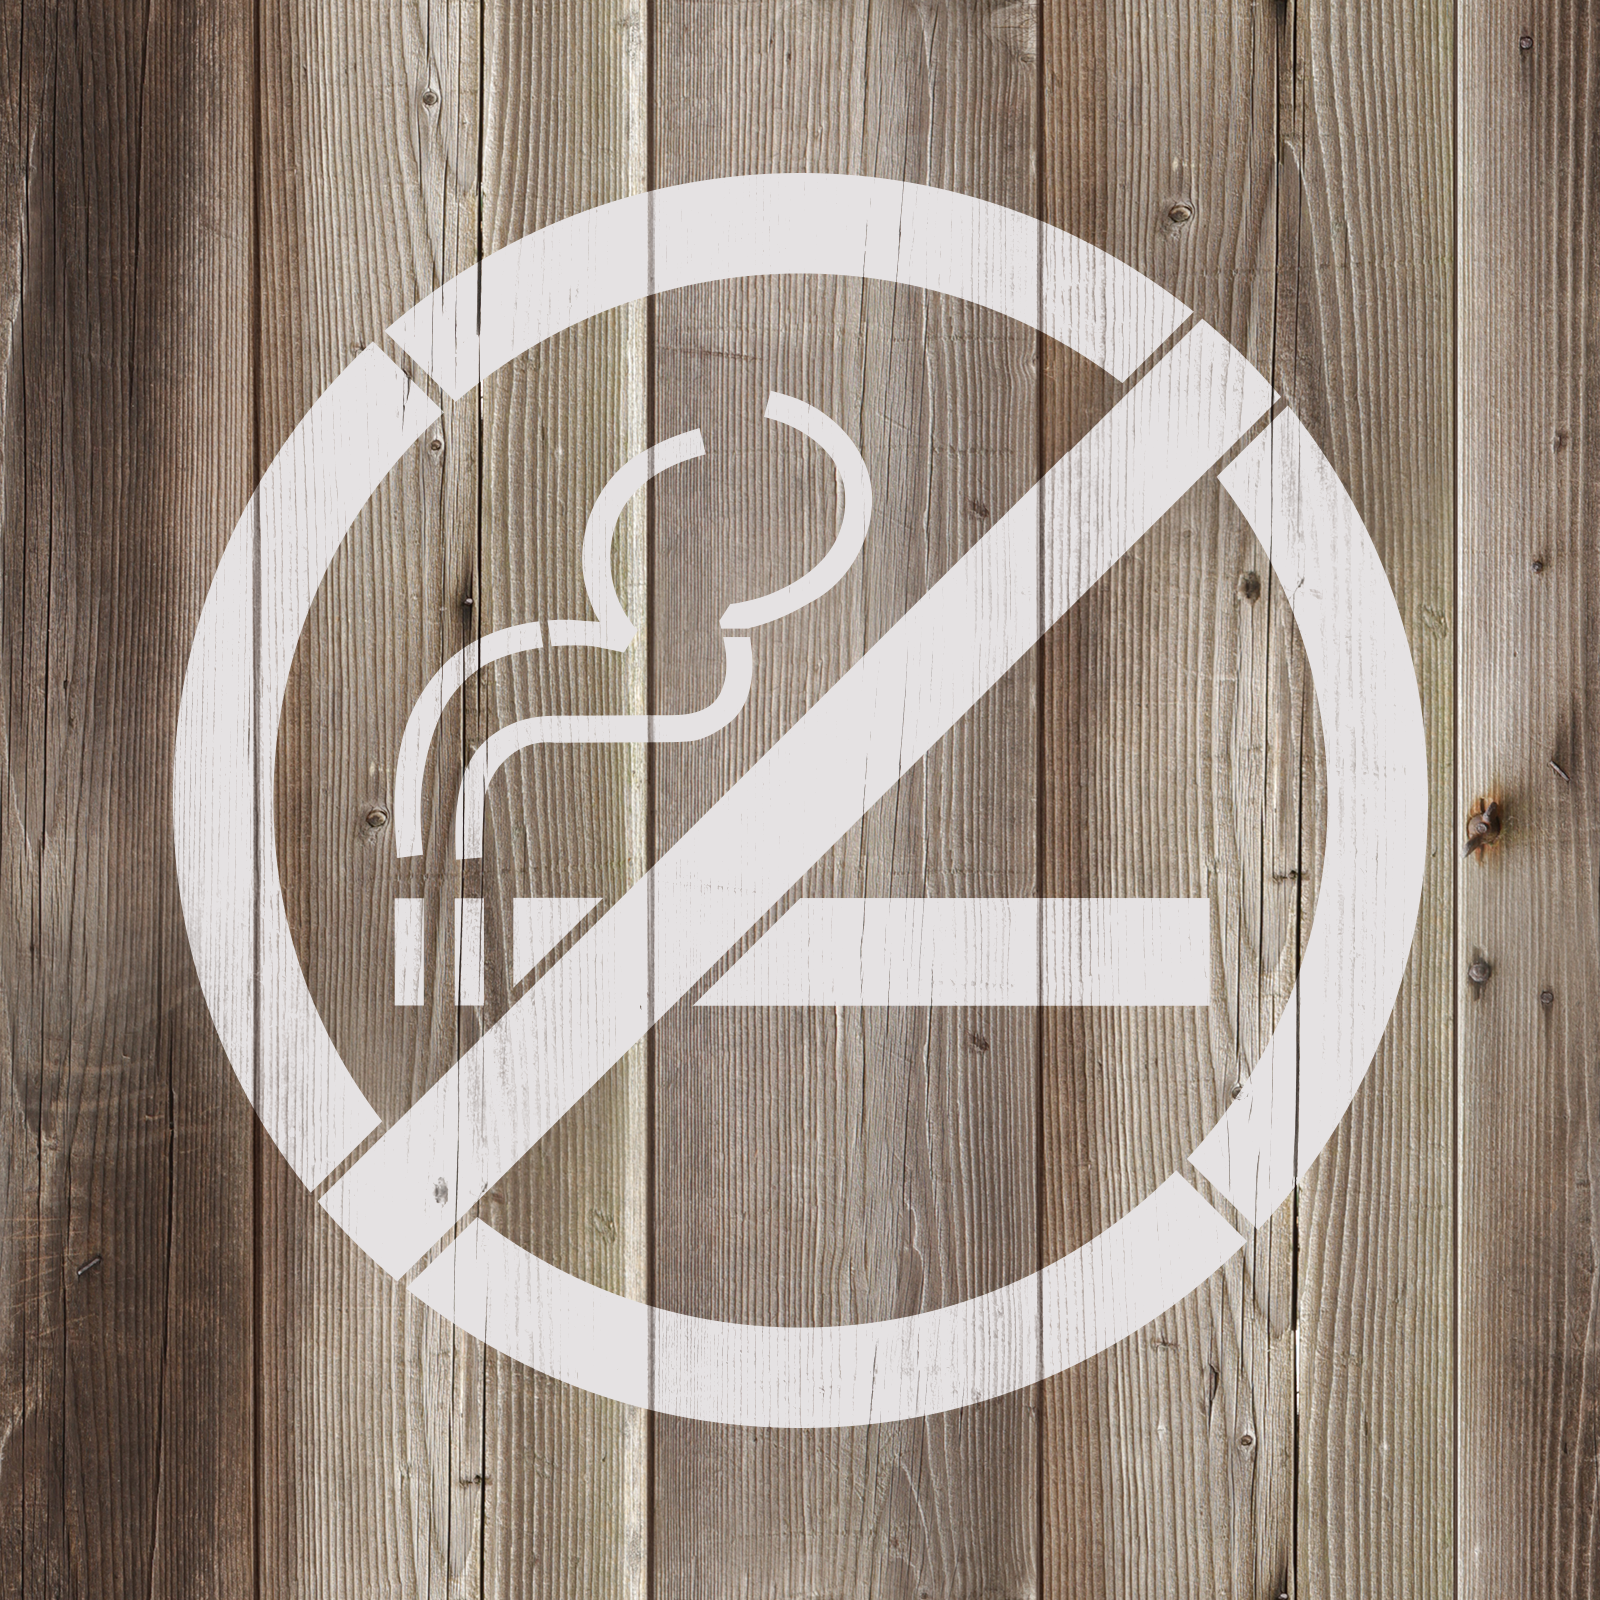 No Smoking Stencil - Reusable Stencils of a No Smoking Sign